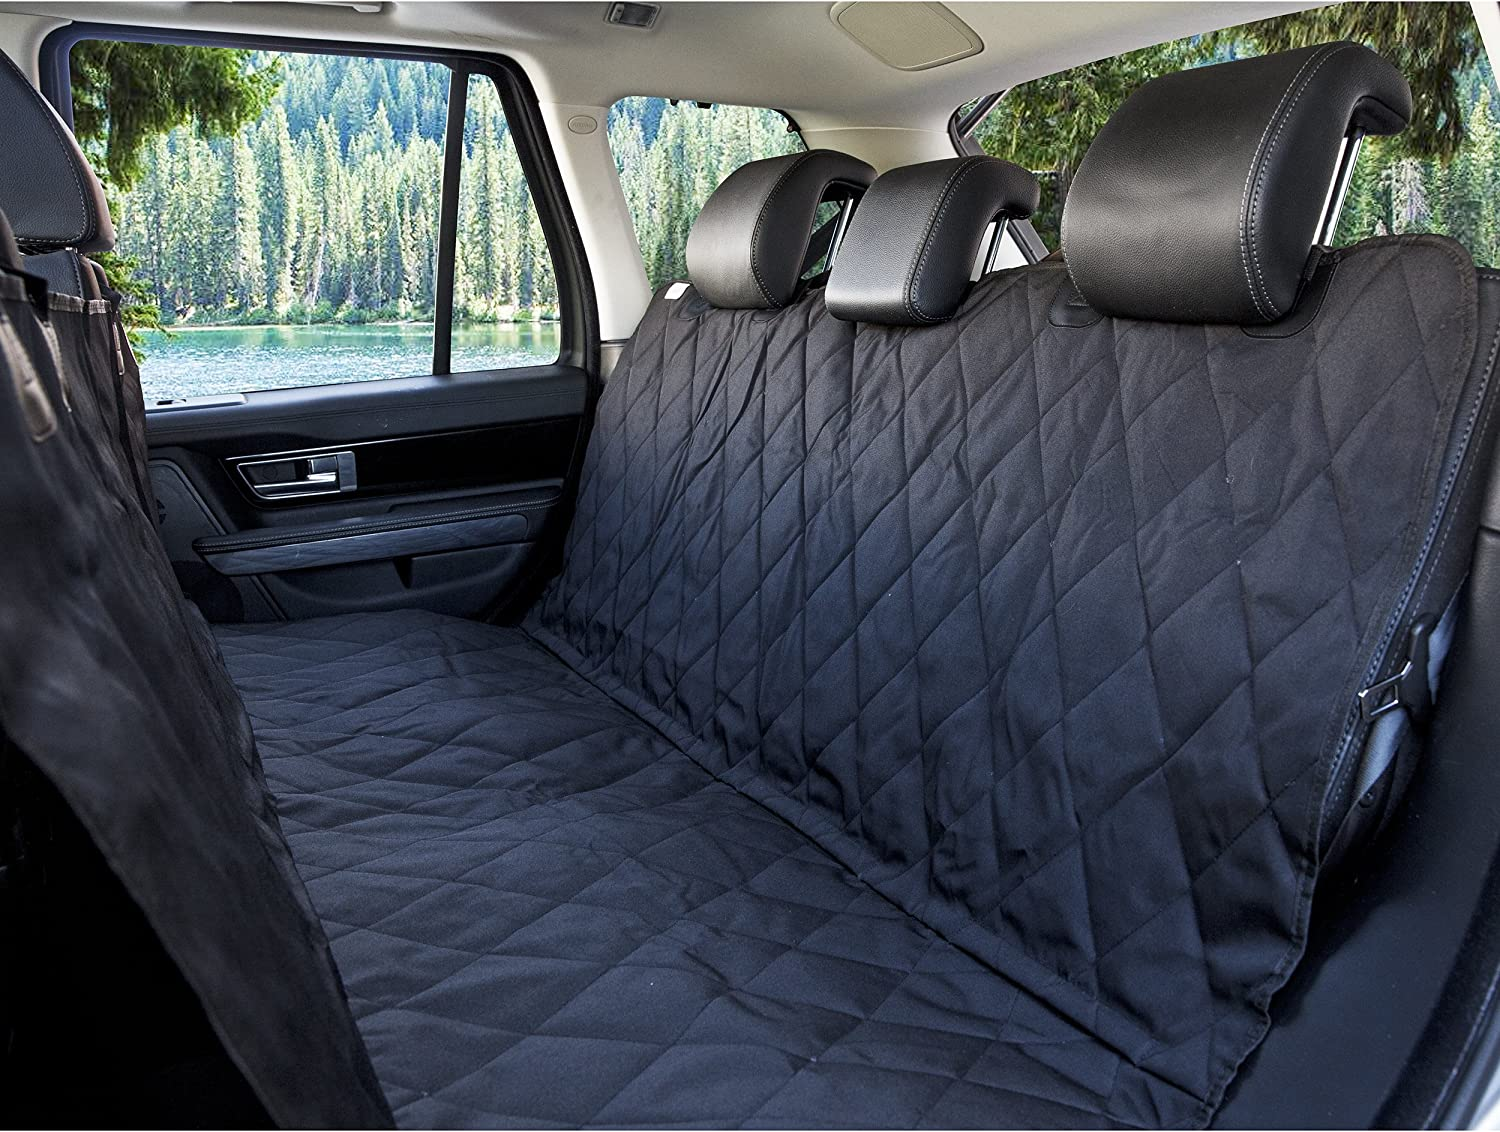 BarksBar Pet Car Seat Cover With Seat Anchors for Cars, Trucks, Suv's and Vehicles   WaterProof & NonSlip Backing